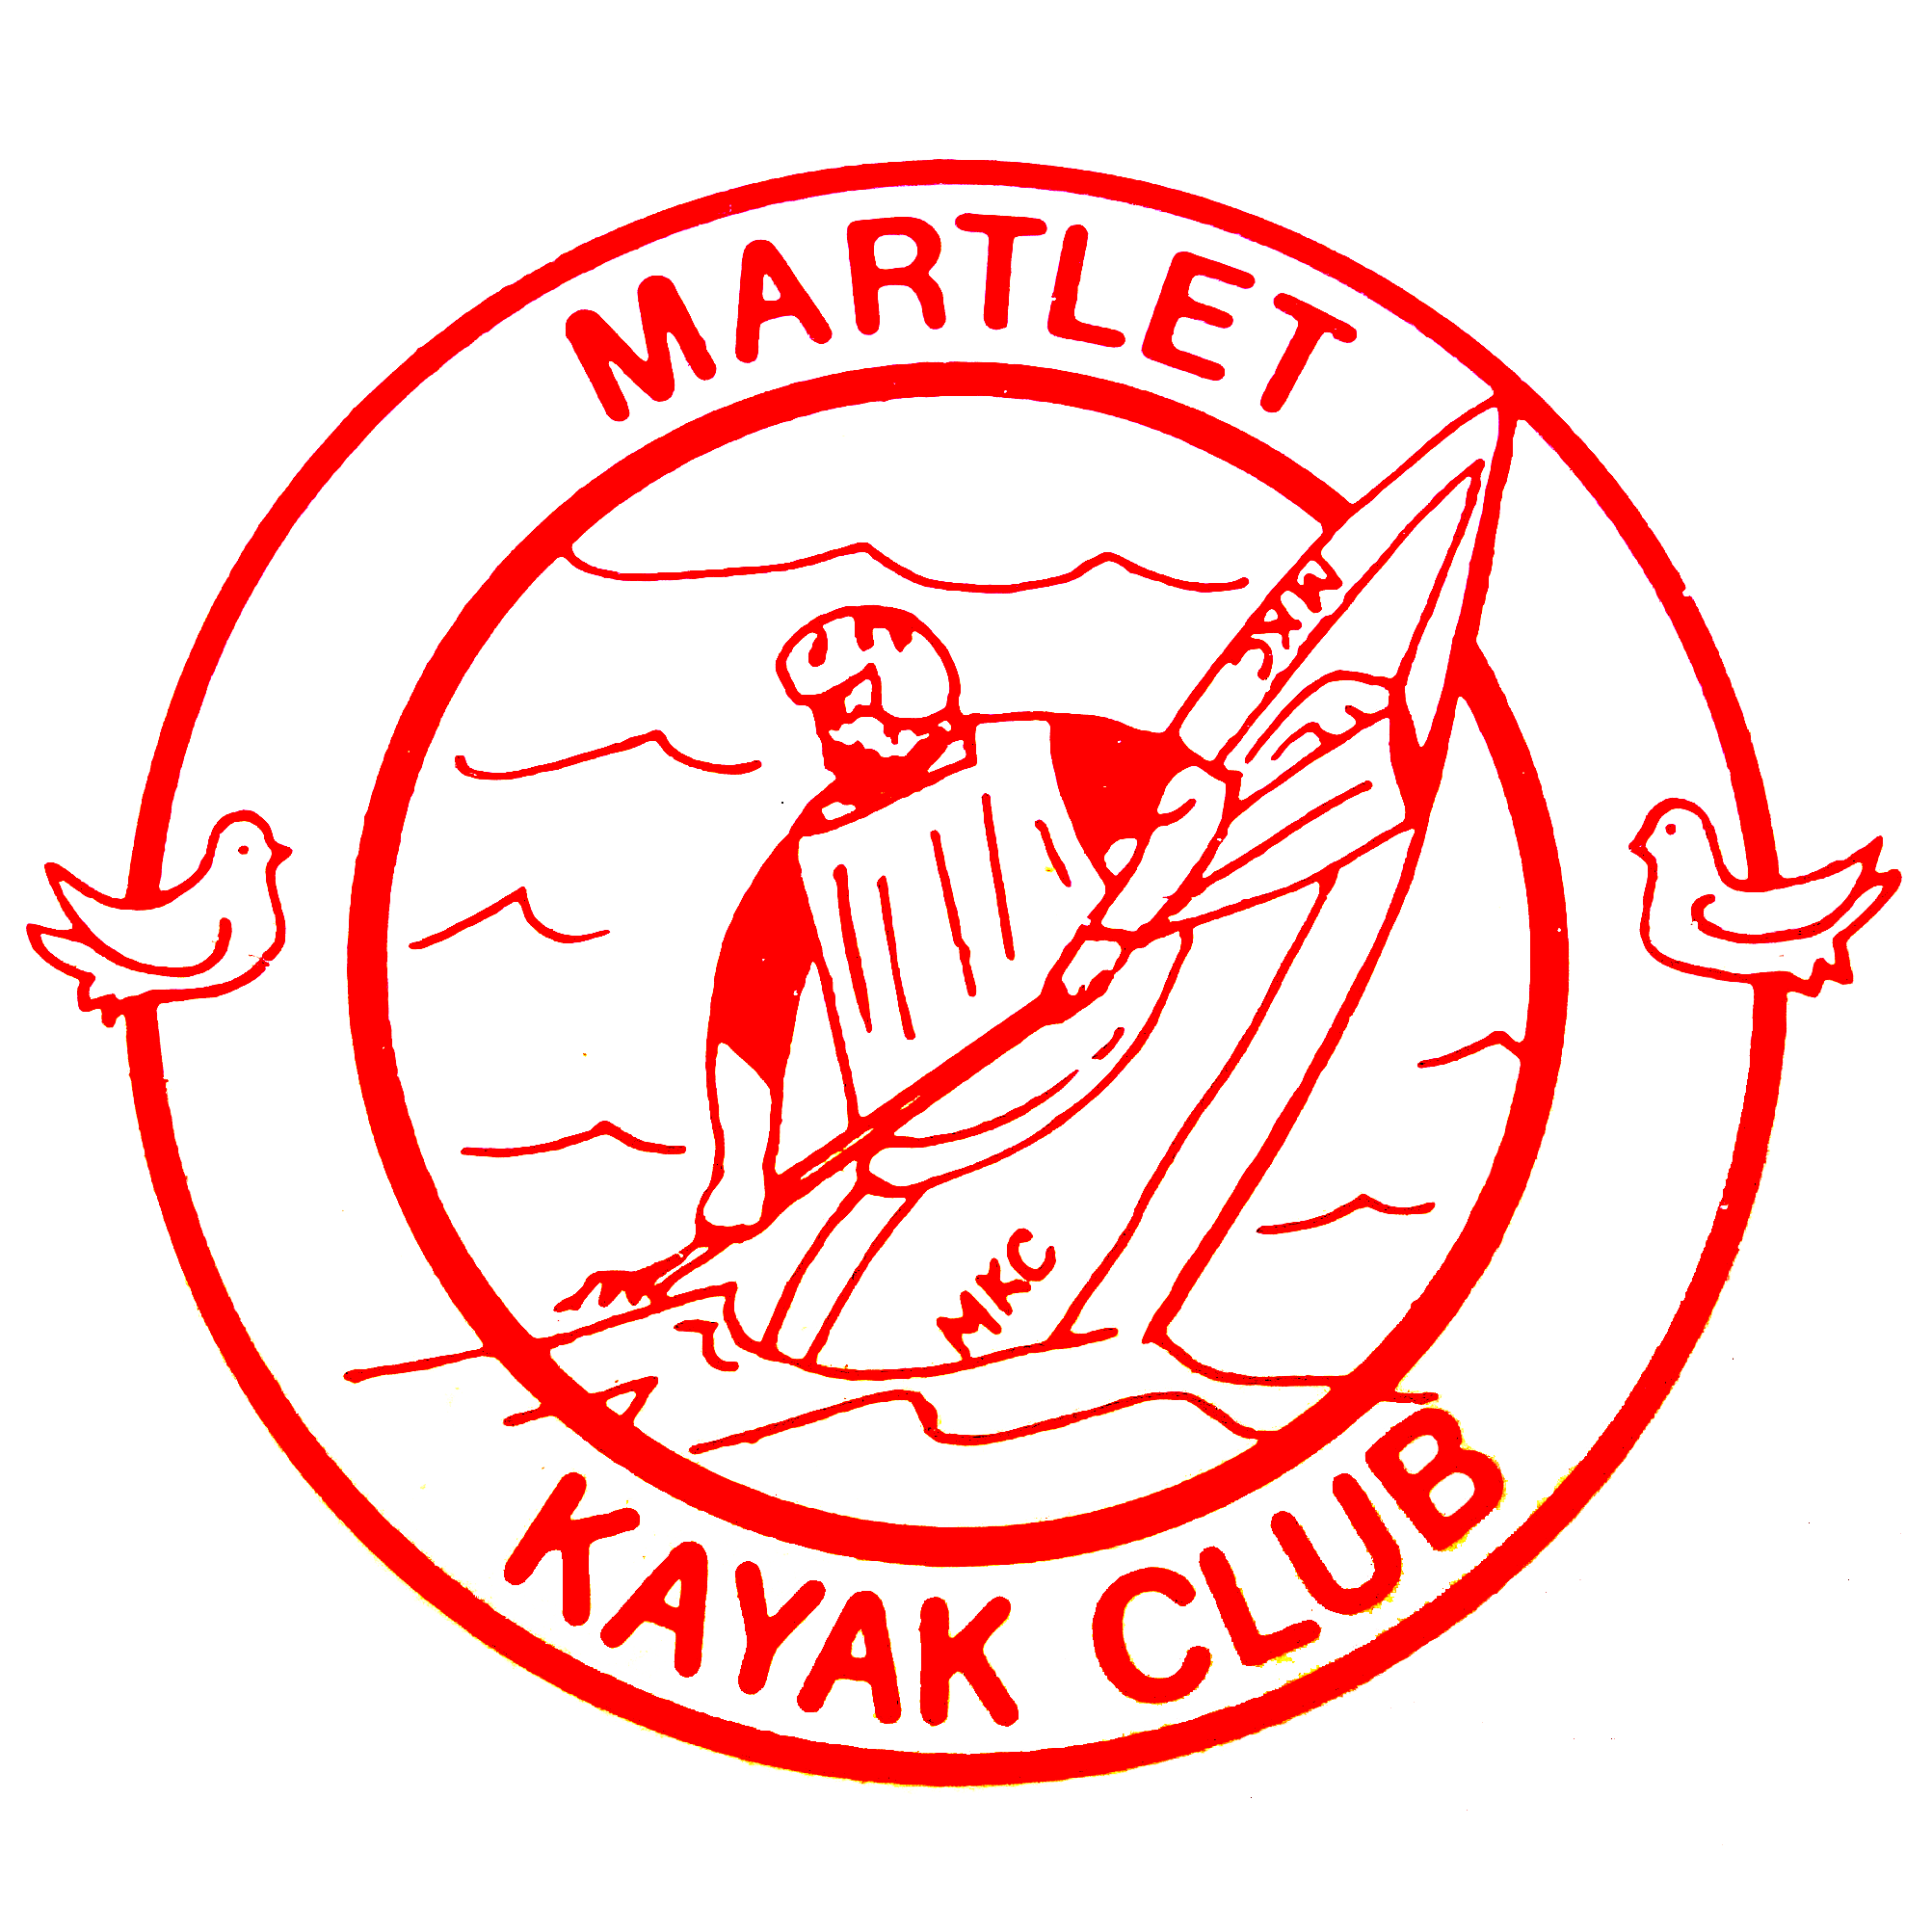 Martlet Kayak Club logo